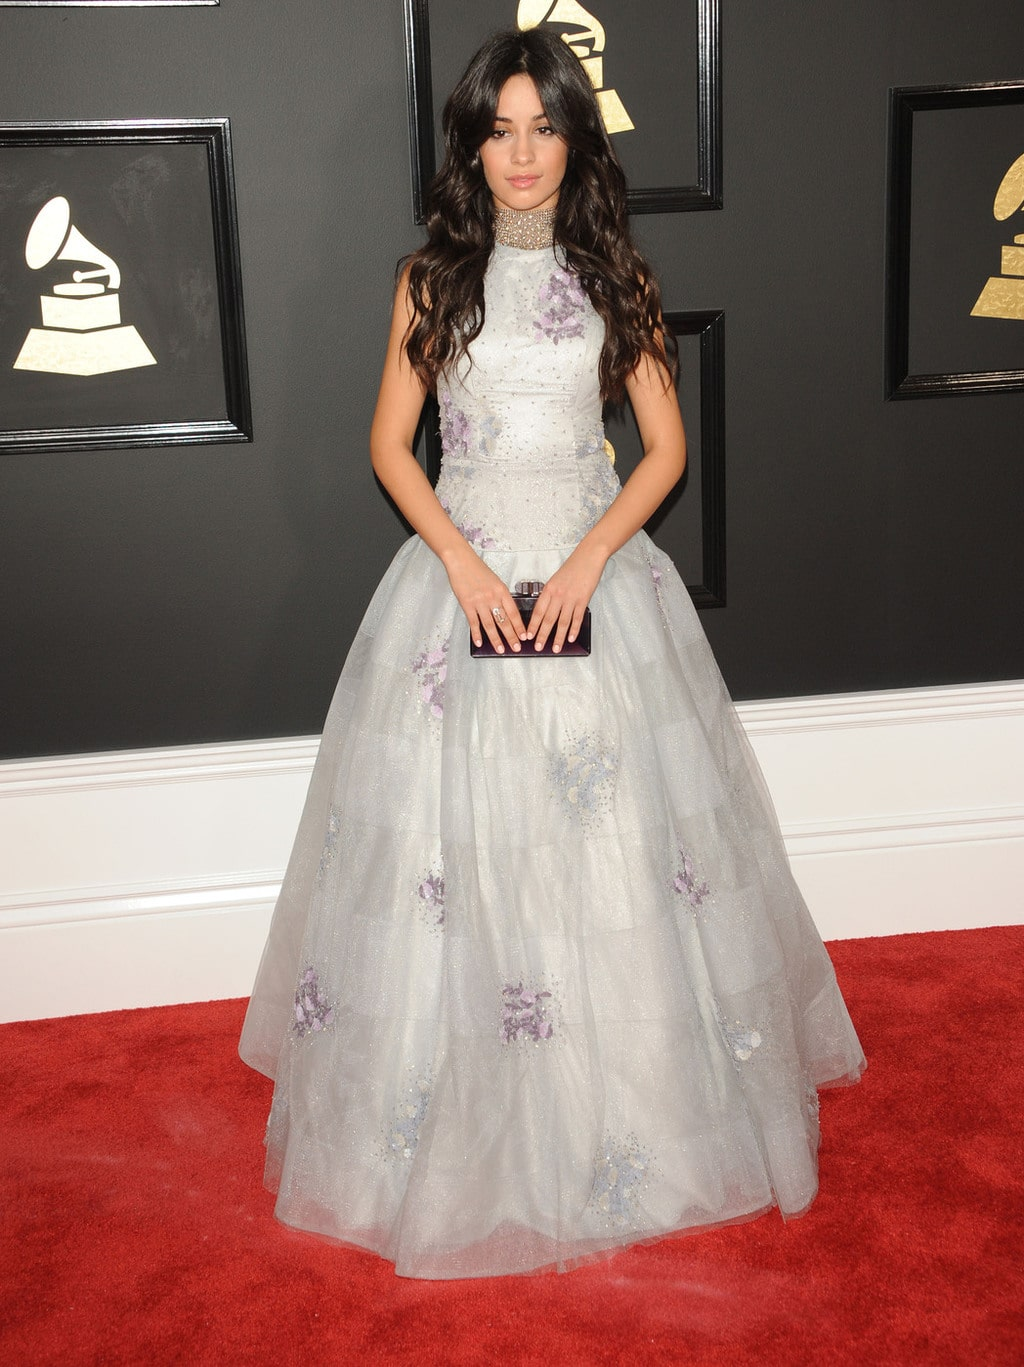 Camila Cabello in Miri Couture at the 2017 Grammy Awards